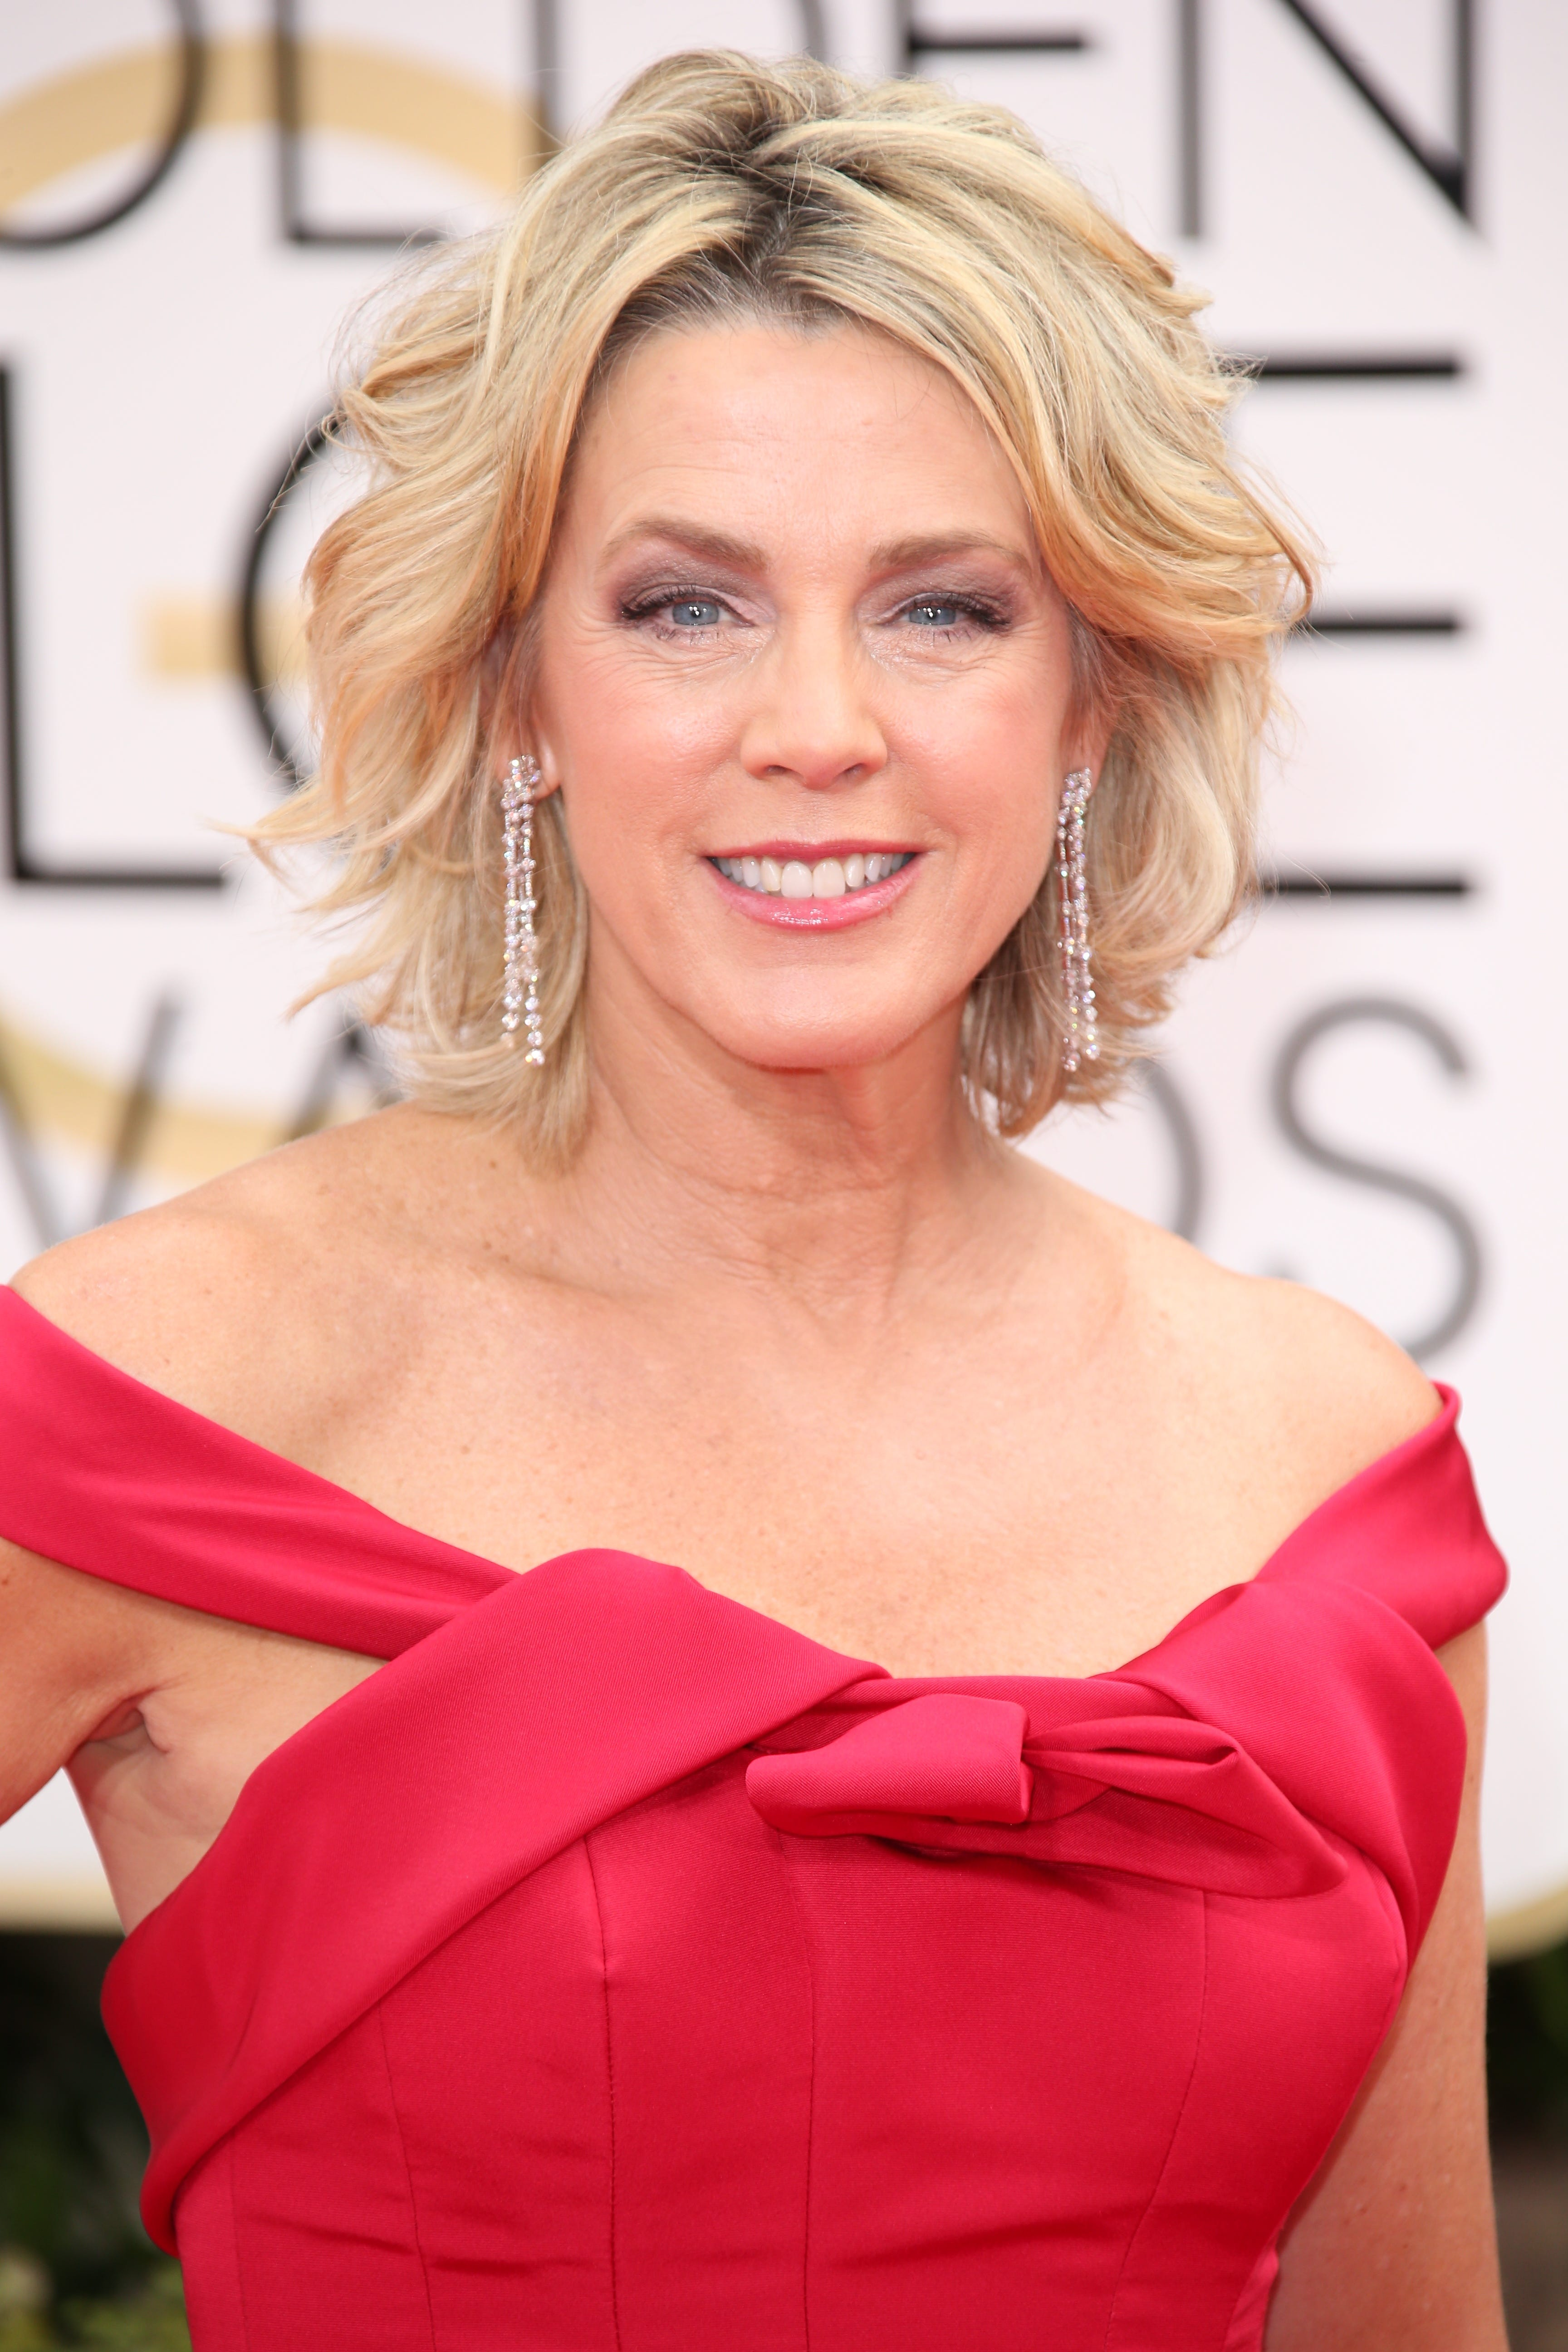 'Inside Edition' host Deborah Norville to undergo cancer surgery after viewer spotted lump